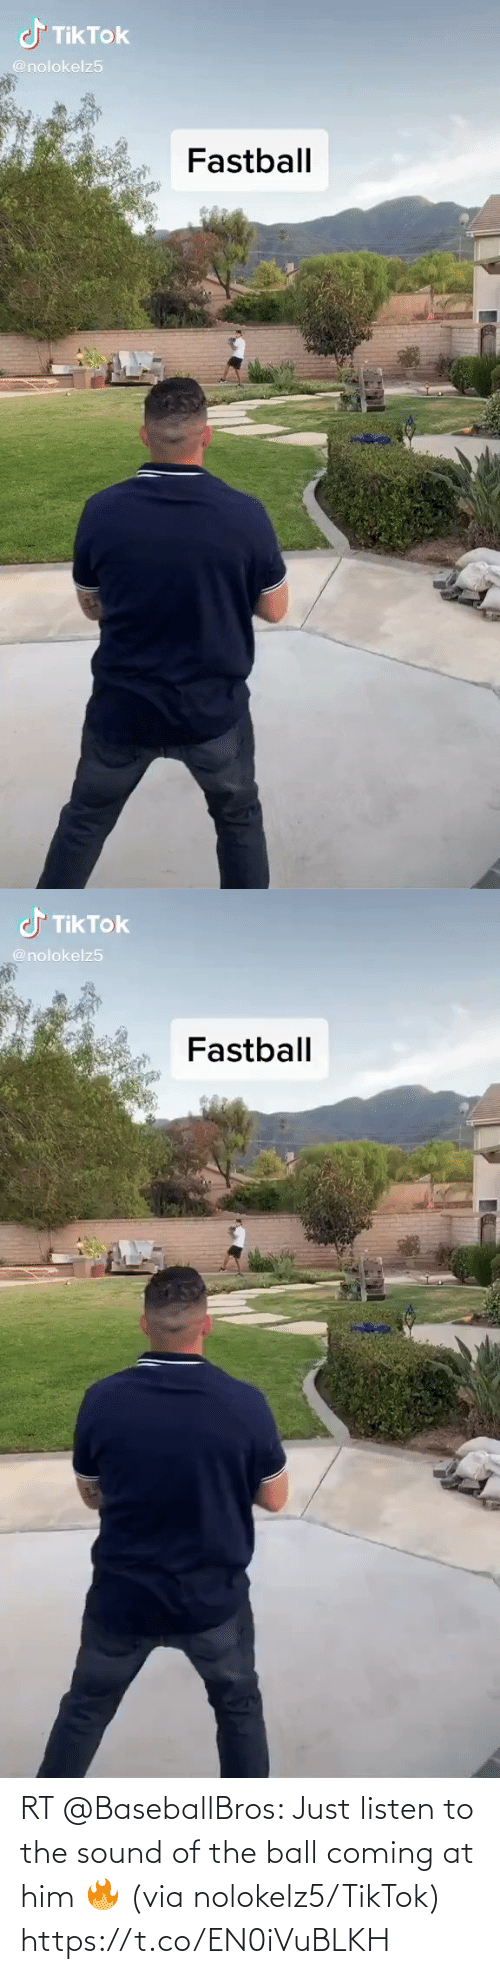 coming: RT @BaseballBros: Just listen to the sound of the ball coming at him 🔥 (via nolokelz5/TikTok) https://t.co/EN0iVuBLKH